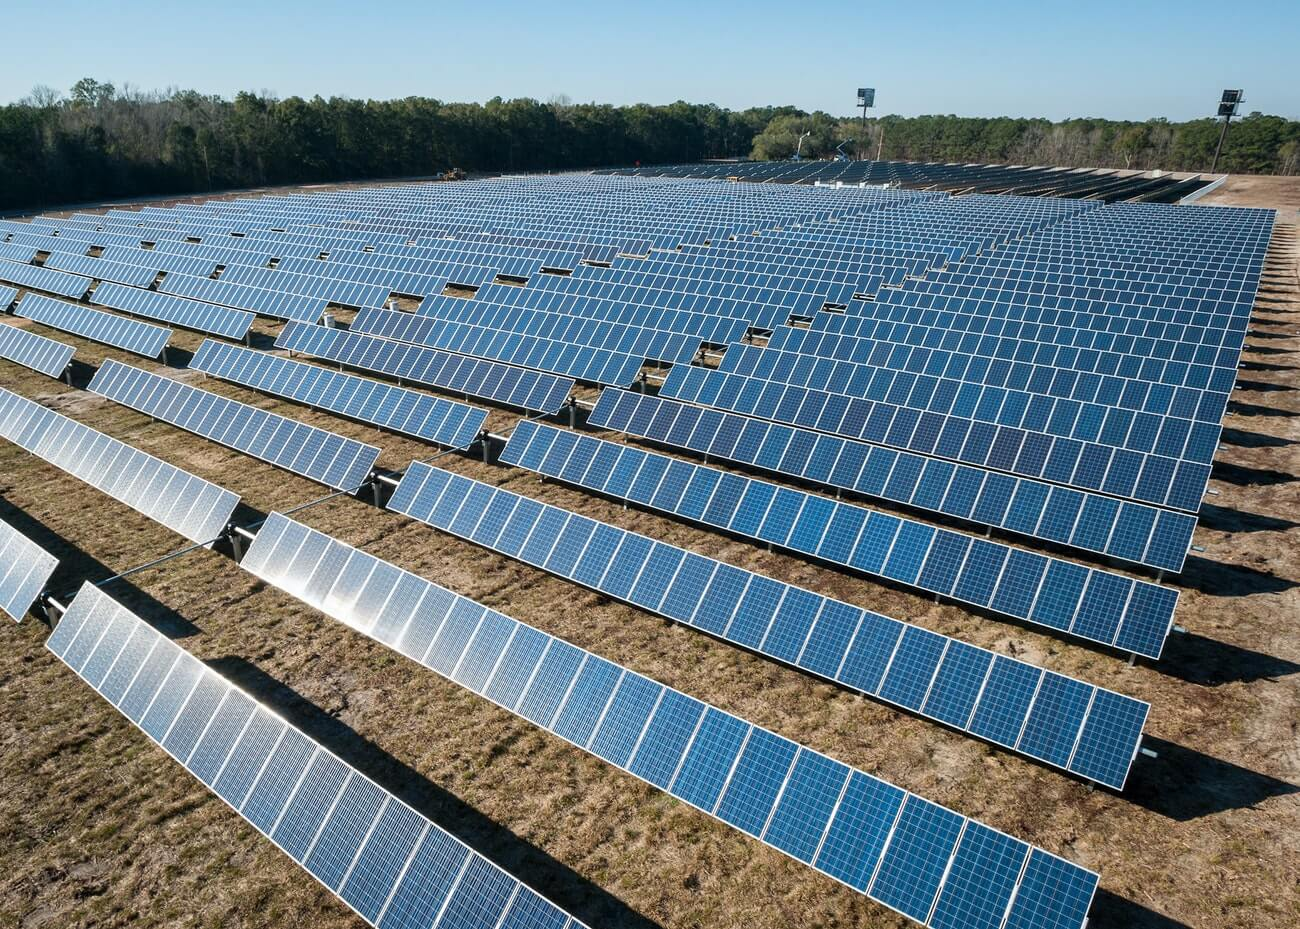 Field of solar panels to provide electricity